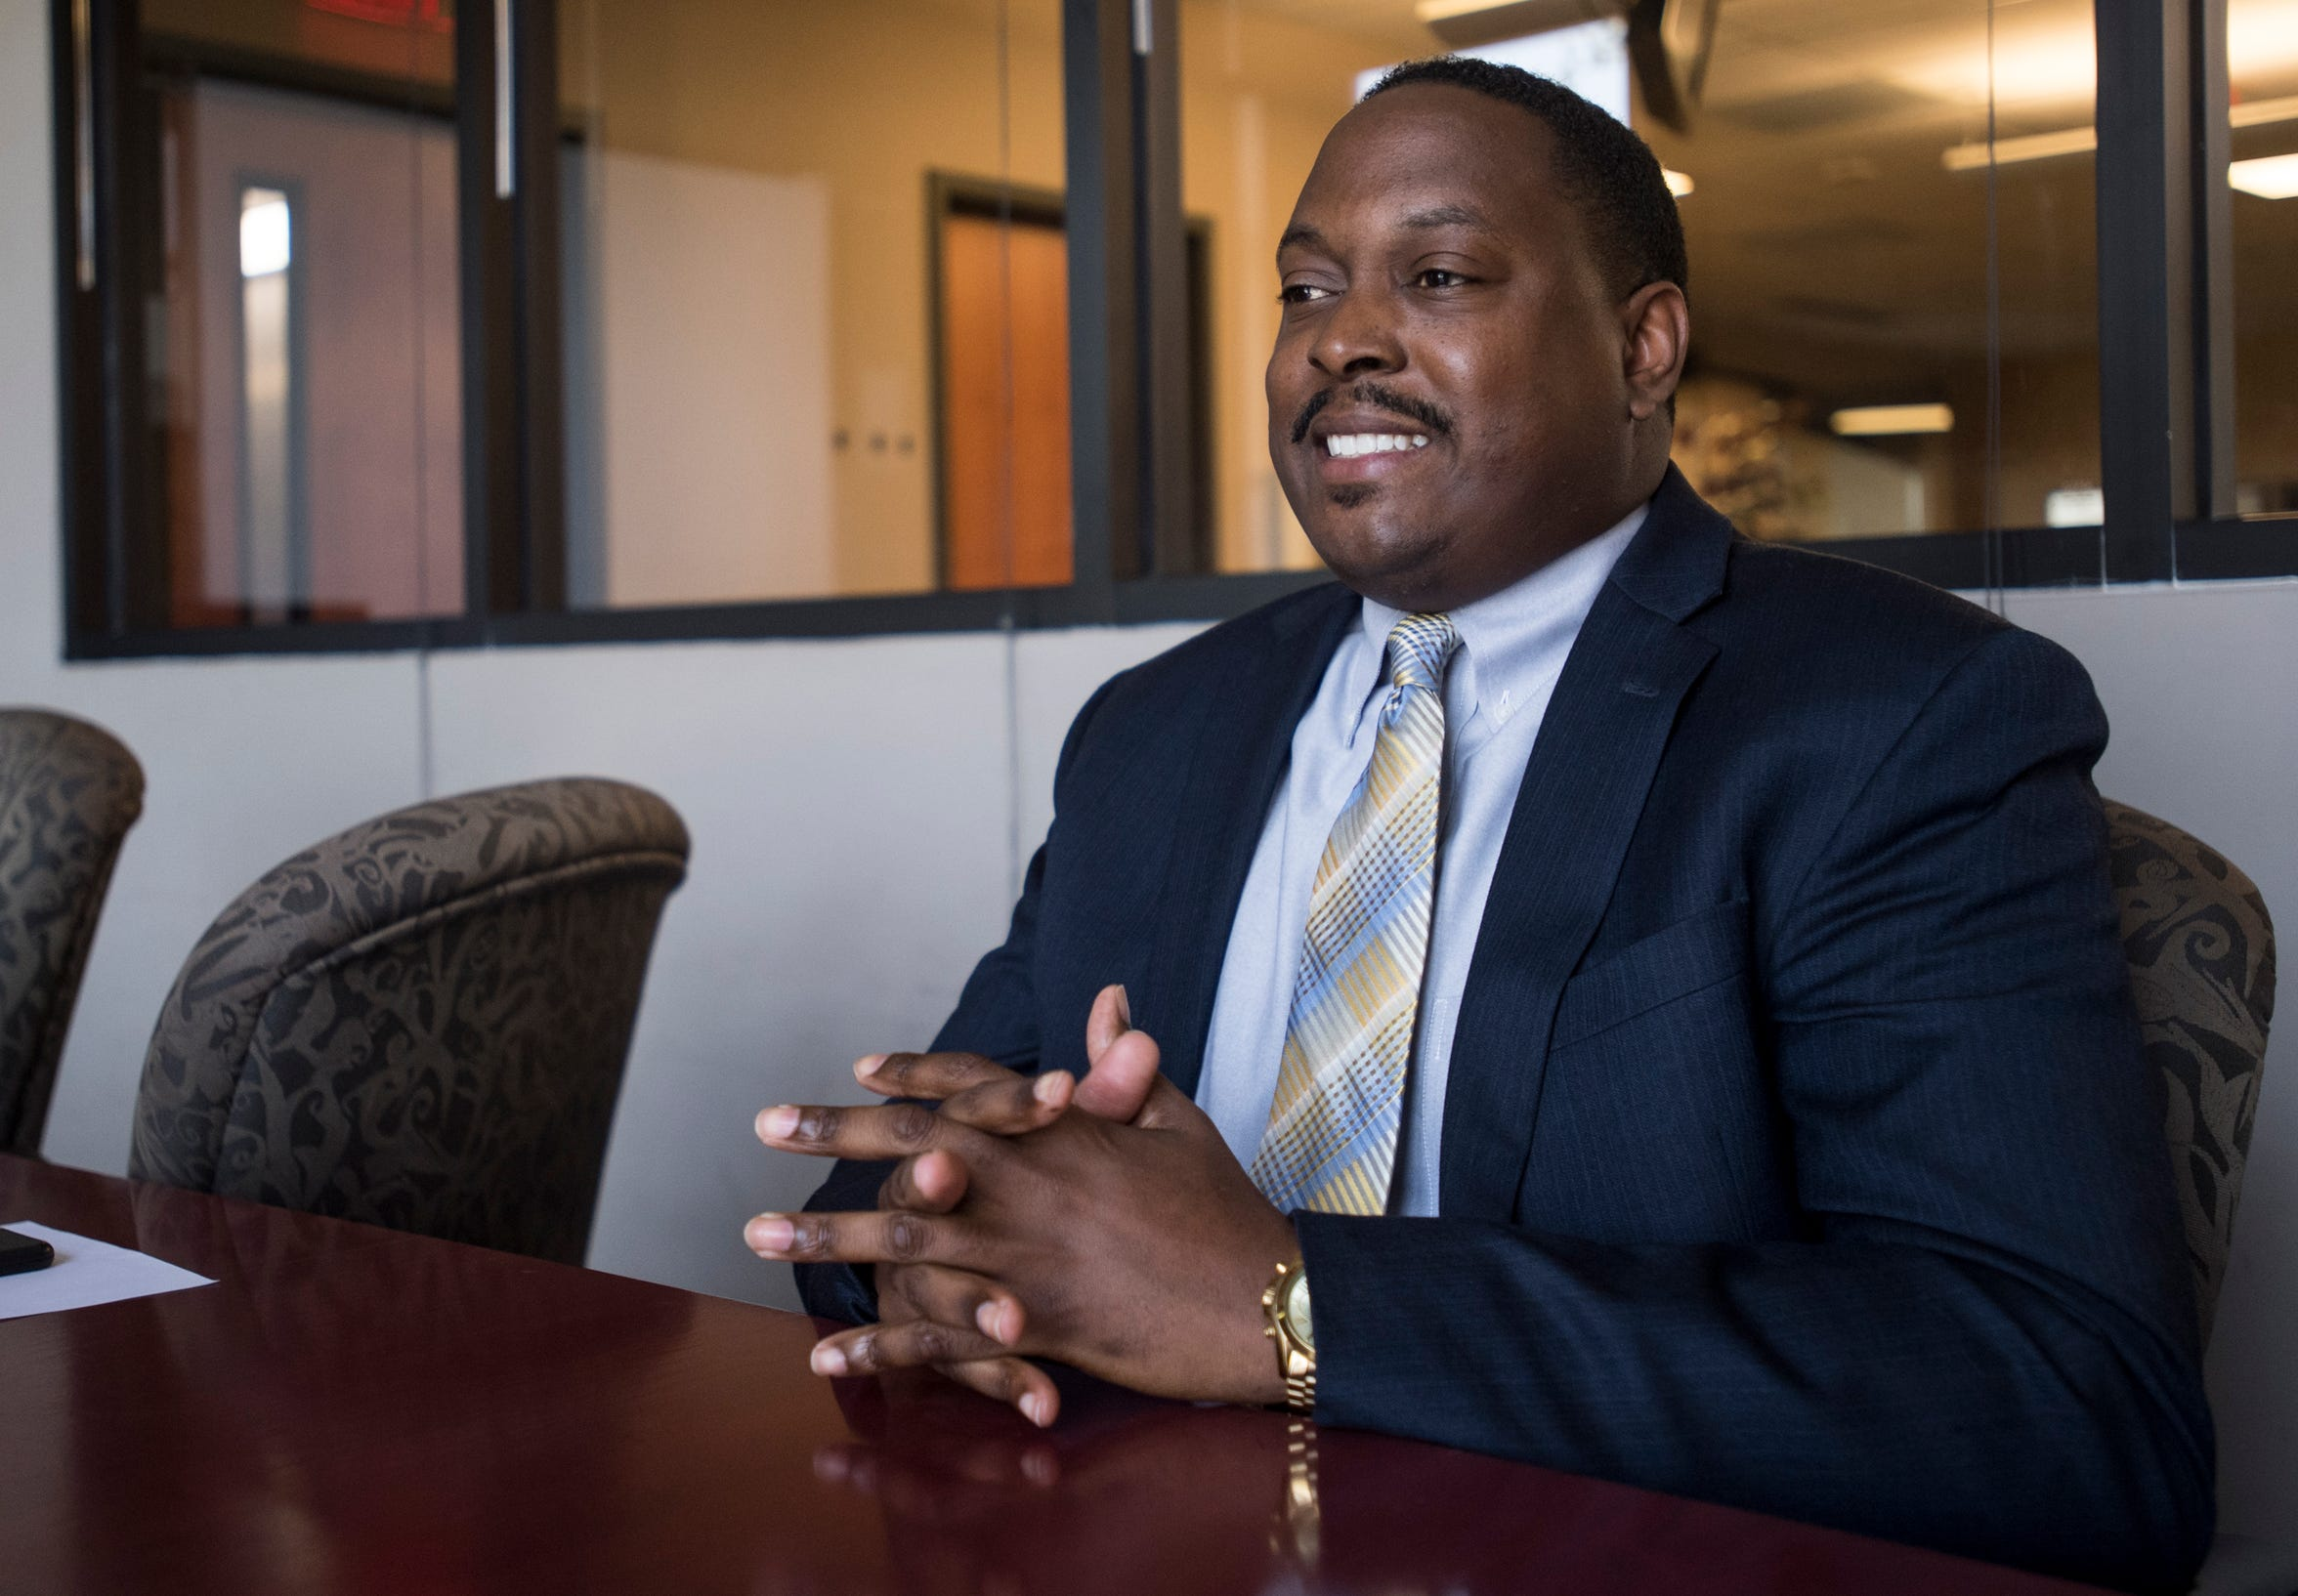 City Council district 1 candidate Carlton Avery is interviewed in Montgomery, Ala., on Wednesday, April 3, 2019.